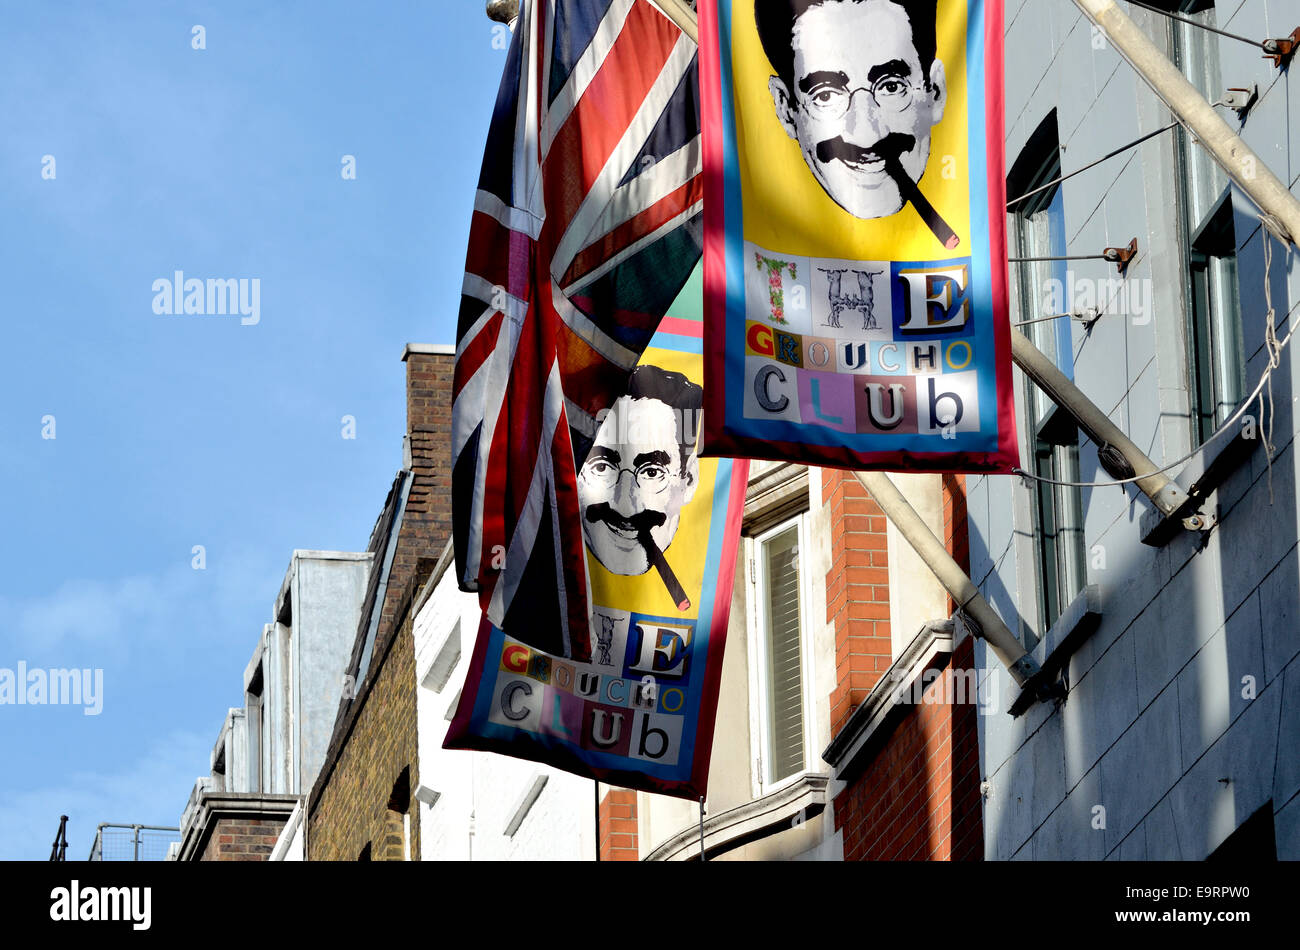 London, England, UK. The Groucho Club in Dean Street, Soho - Stock Image